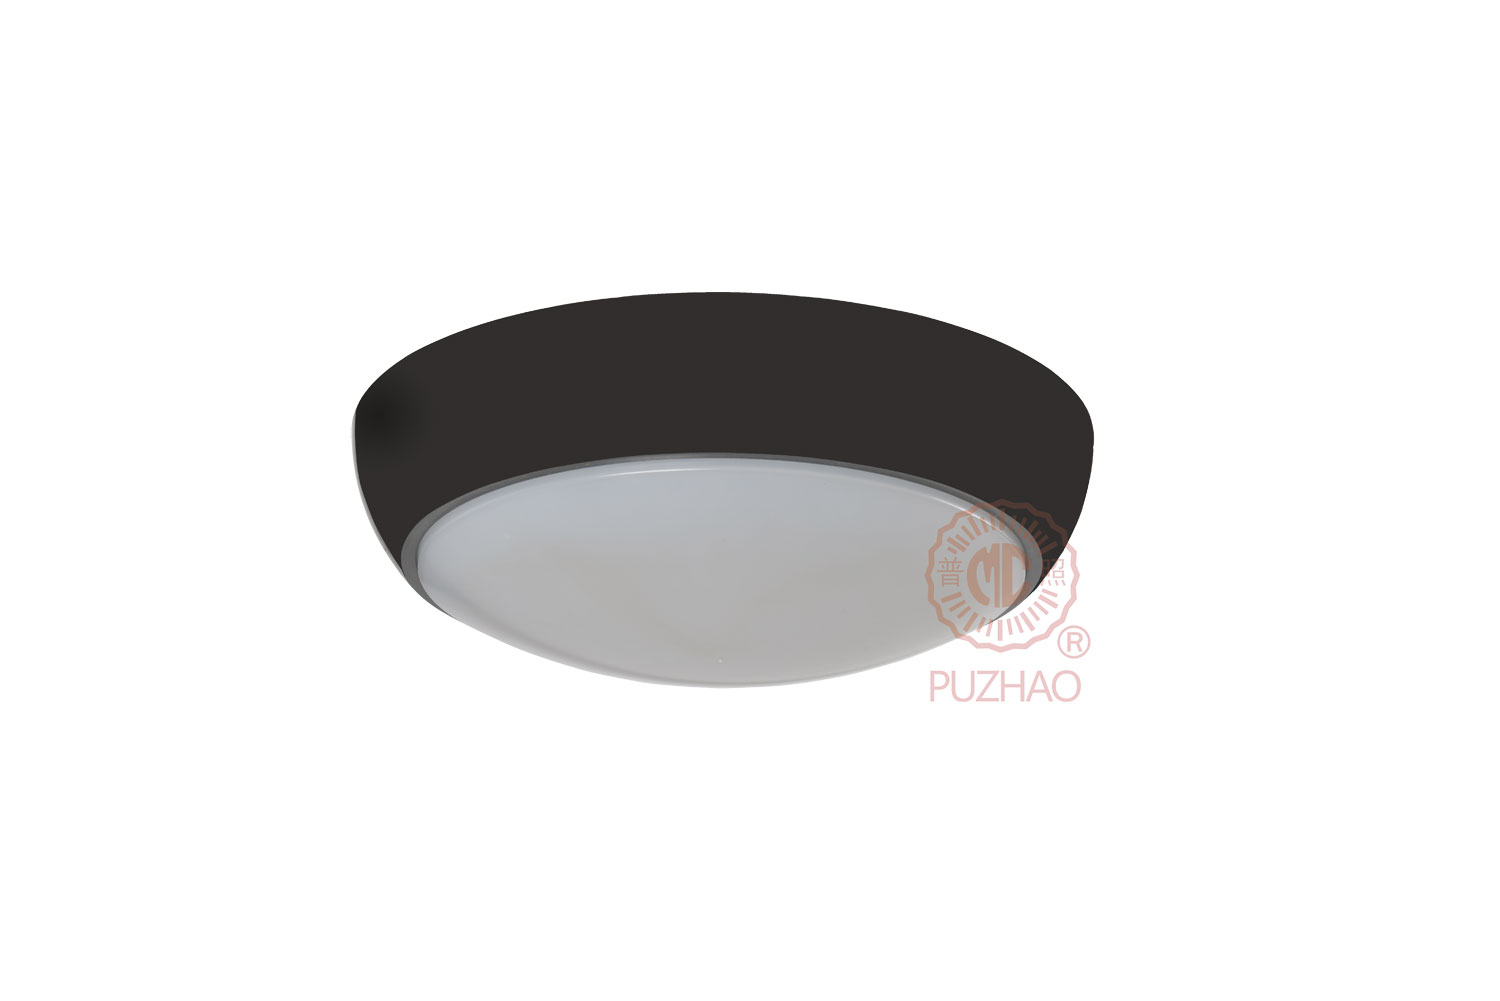 Pz-bhs 6w- led ceiling  lighting